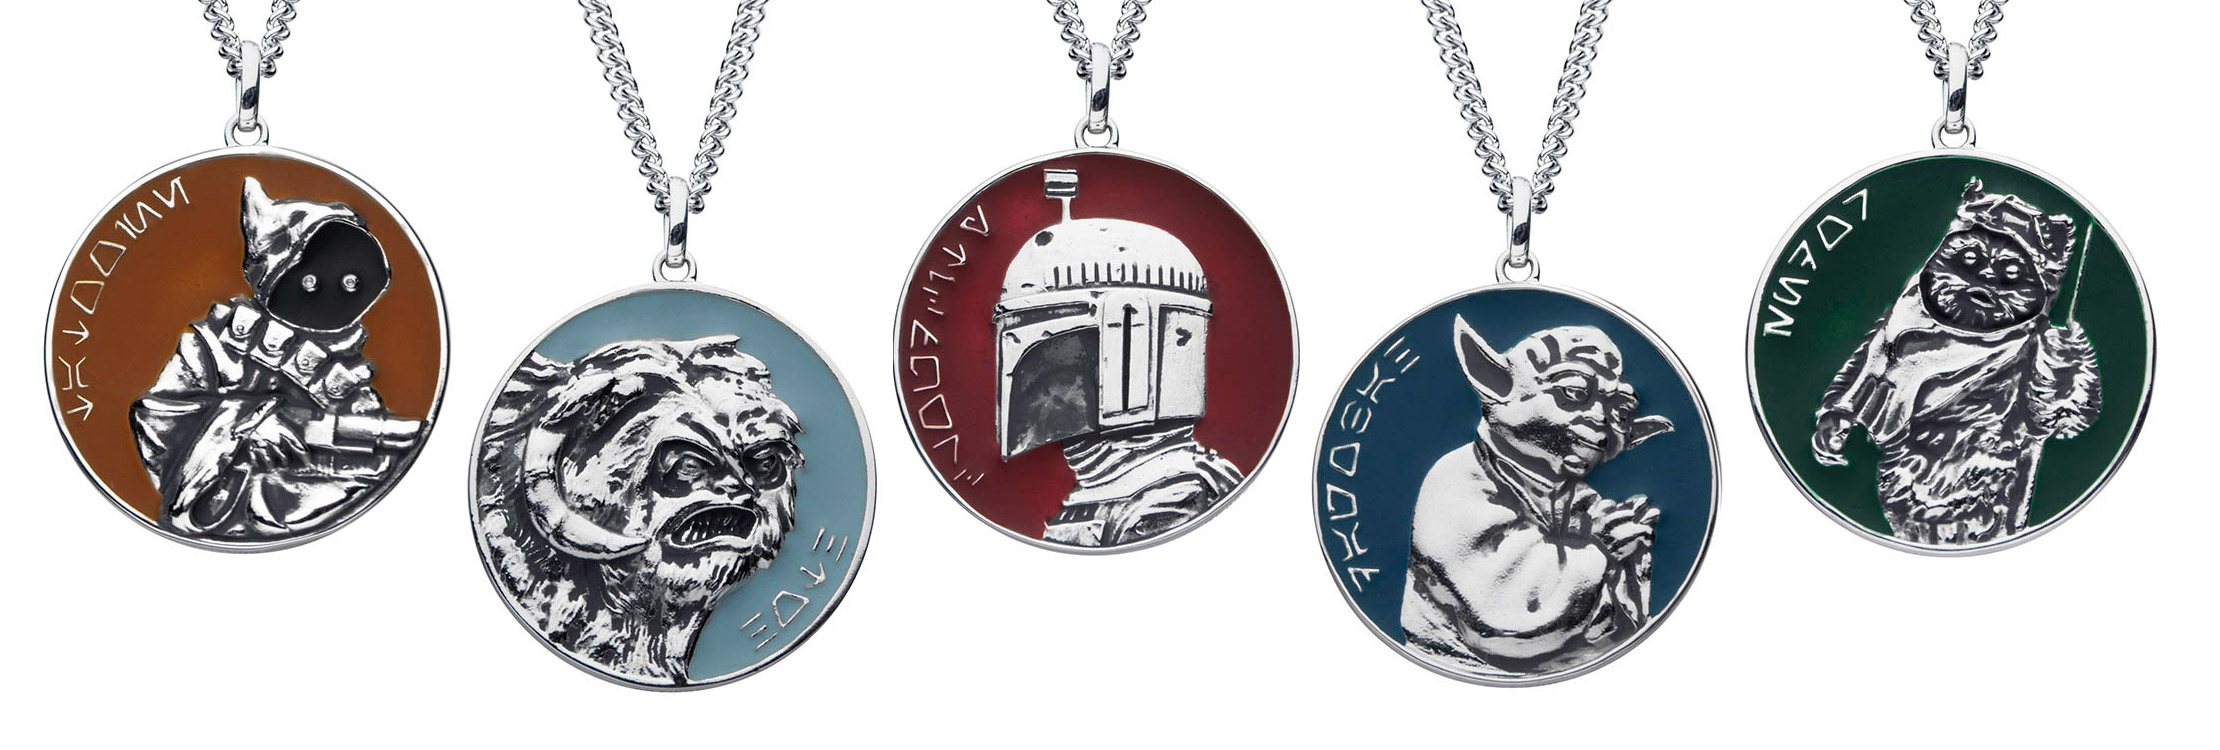 Planetary medallions from the new RockLove X Star Wars collection.